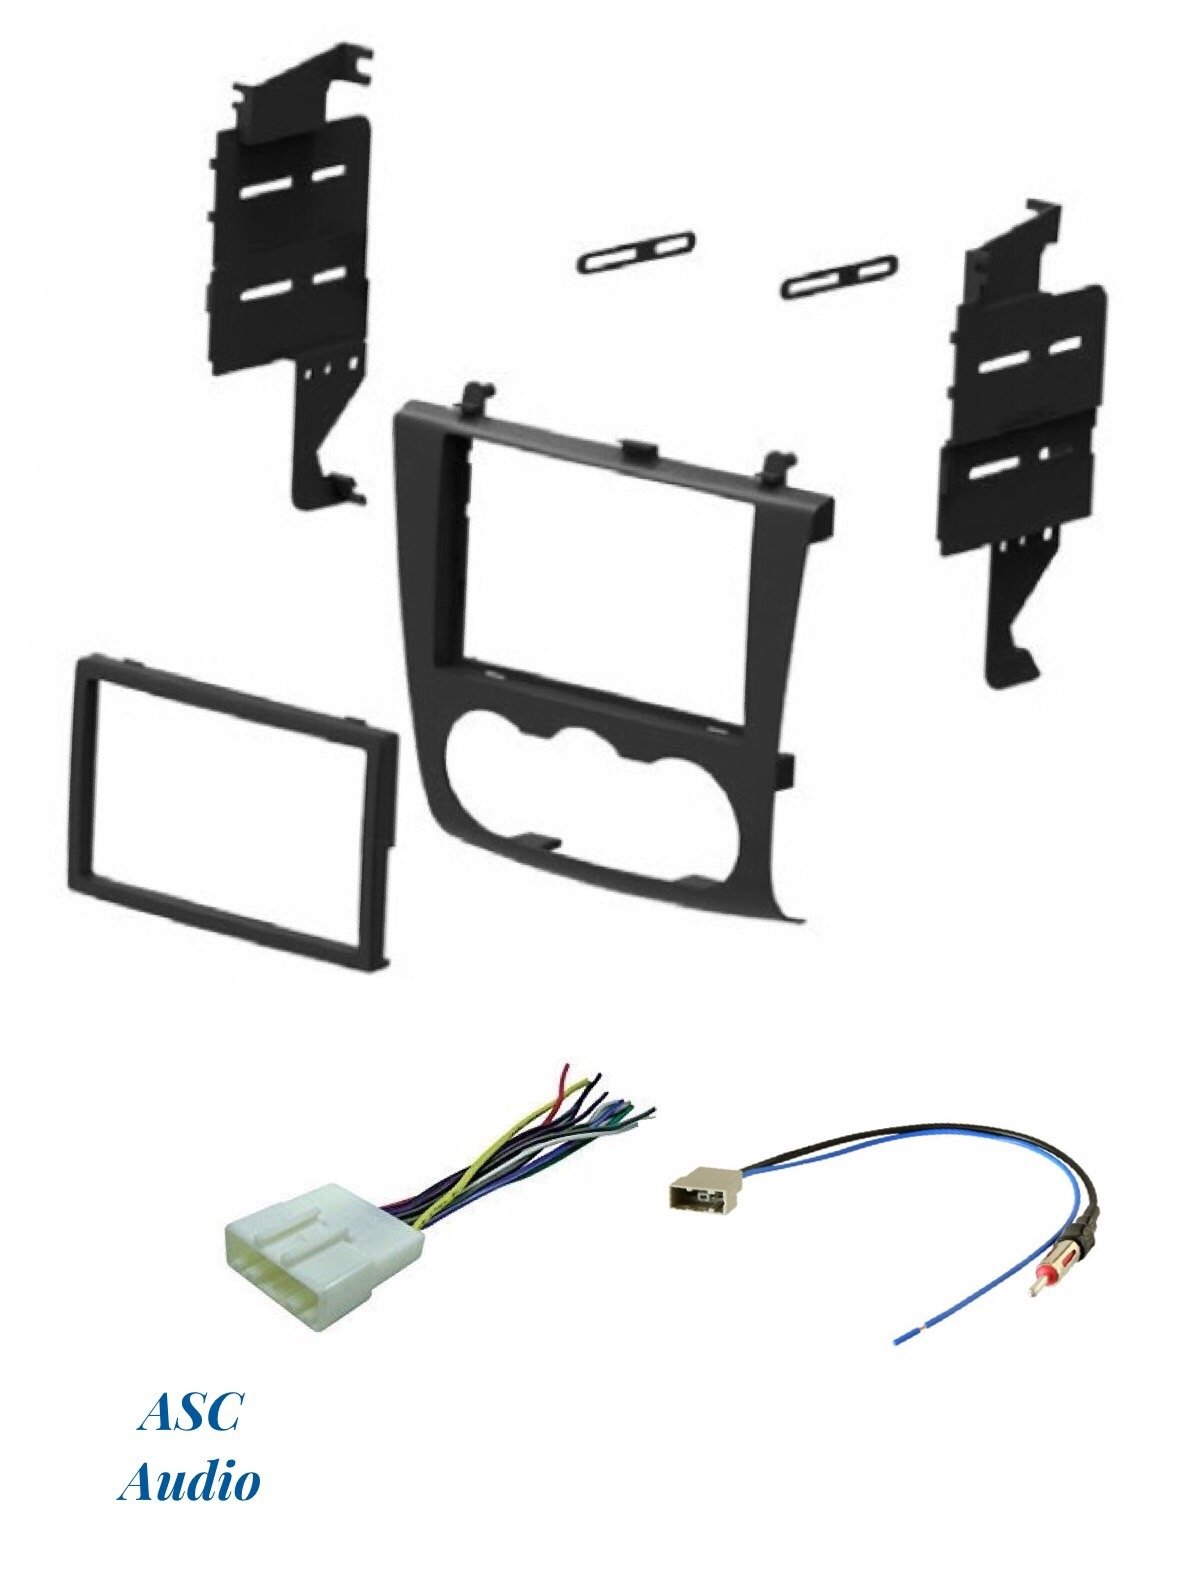 ASC Audio Car Stereo Install Dash Kit, Wire Harness, and Antenna Adapter for installing a Double Din Aftermarket Radio for 2007 2008 2009 2010 2011 2012 Nissan Altima w/Manual Climate Knobs